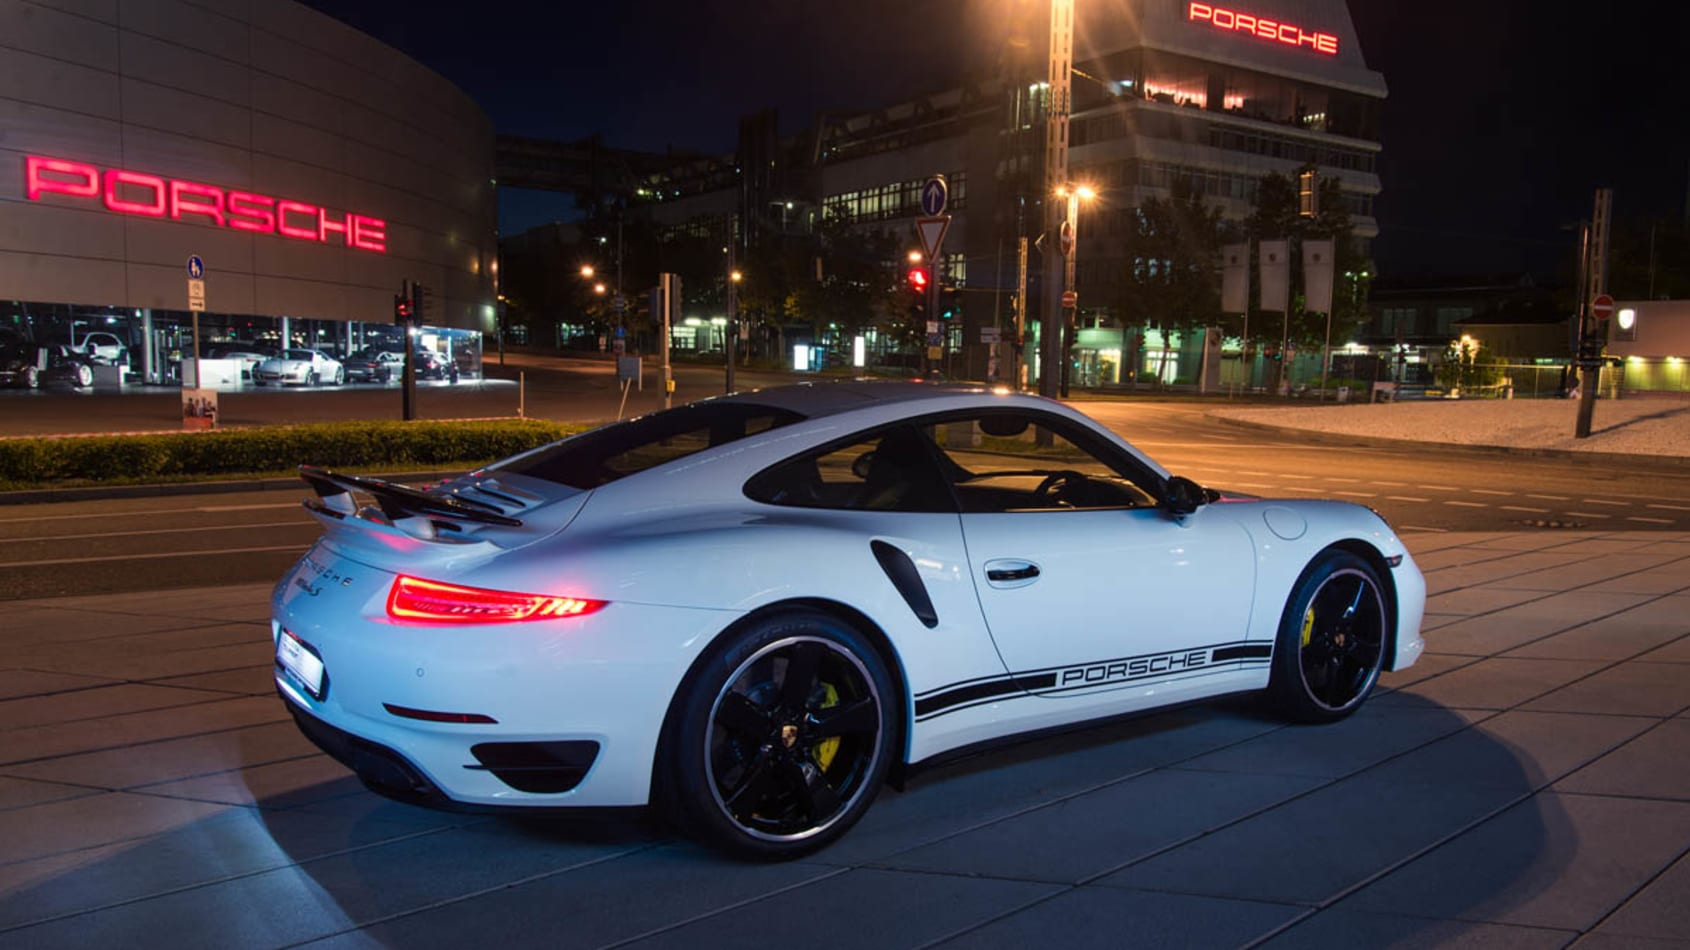 Porsche 911 991 Turbo S GB Edition in white